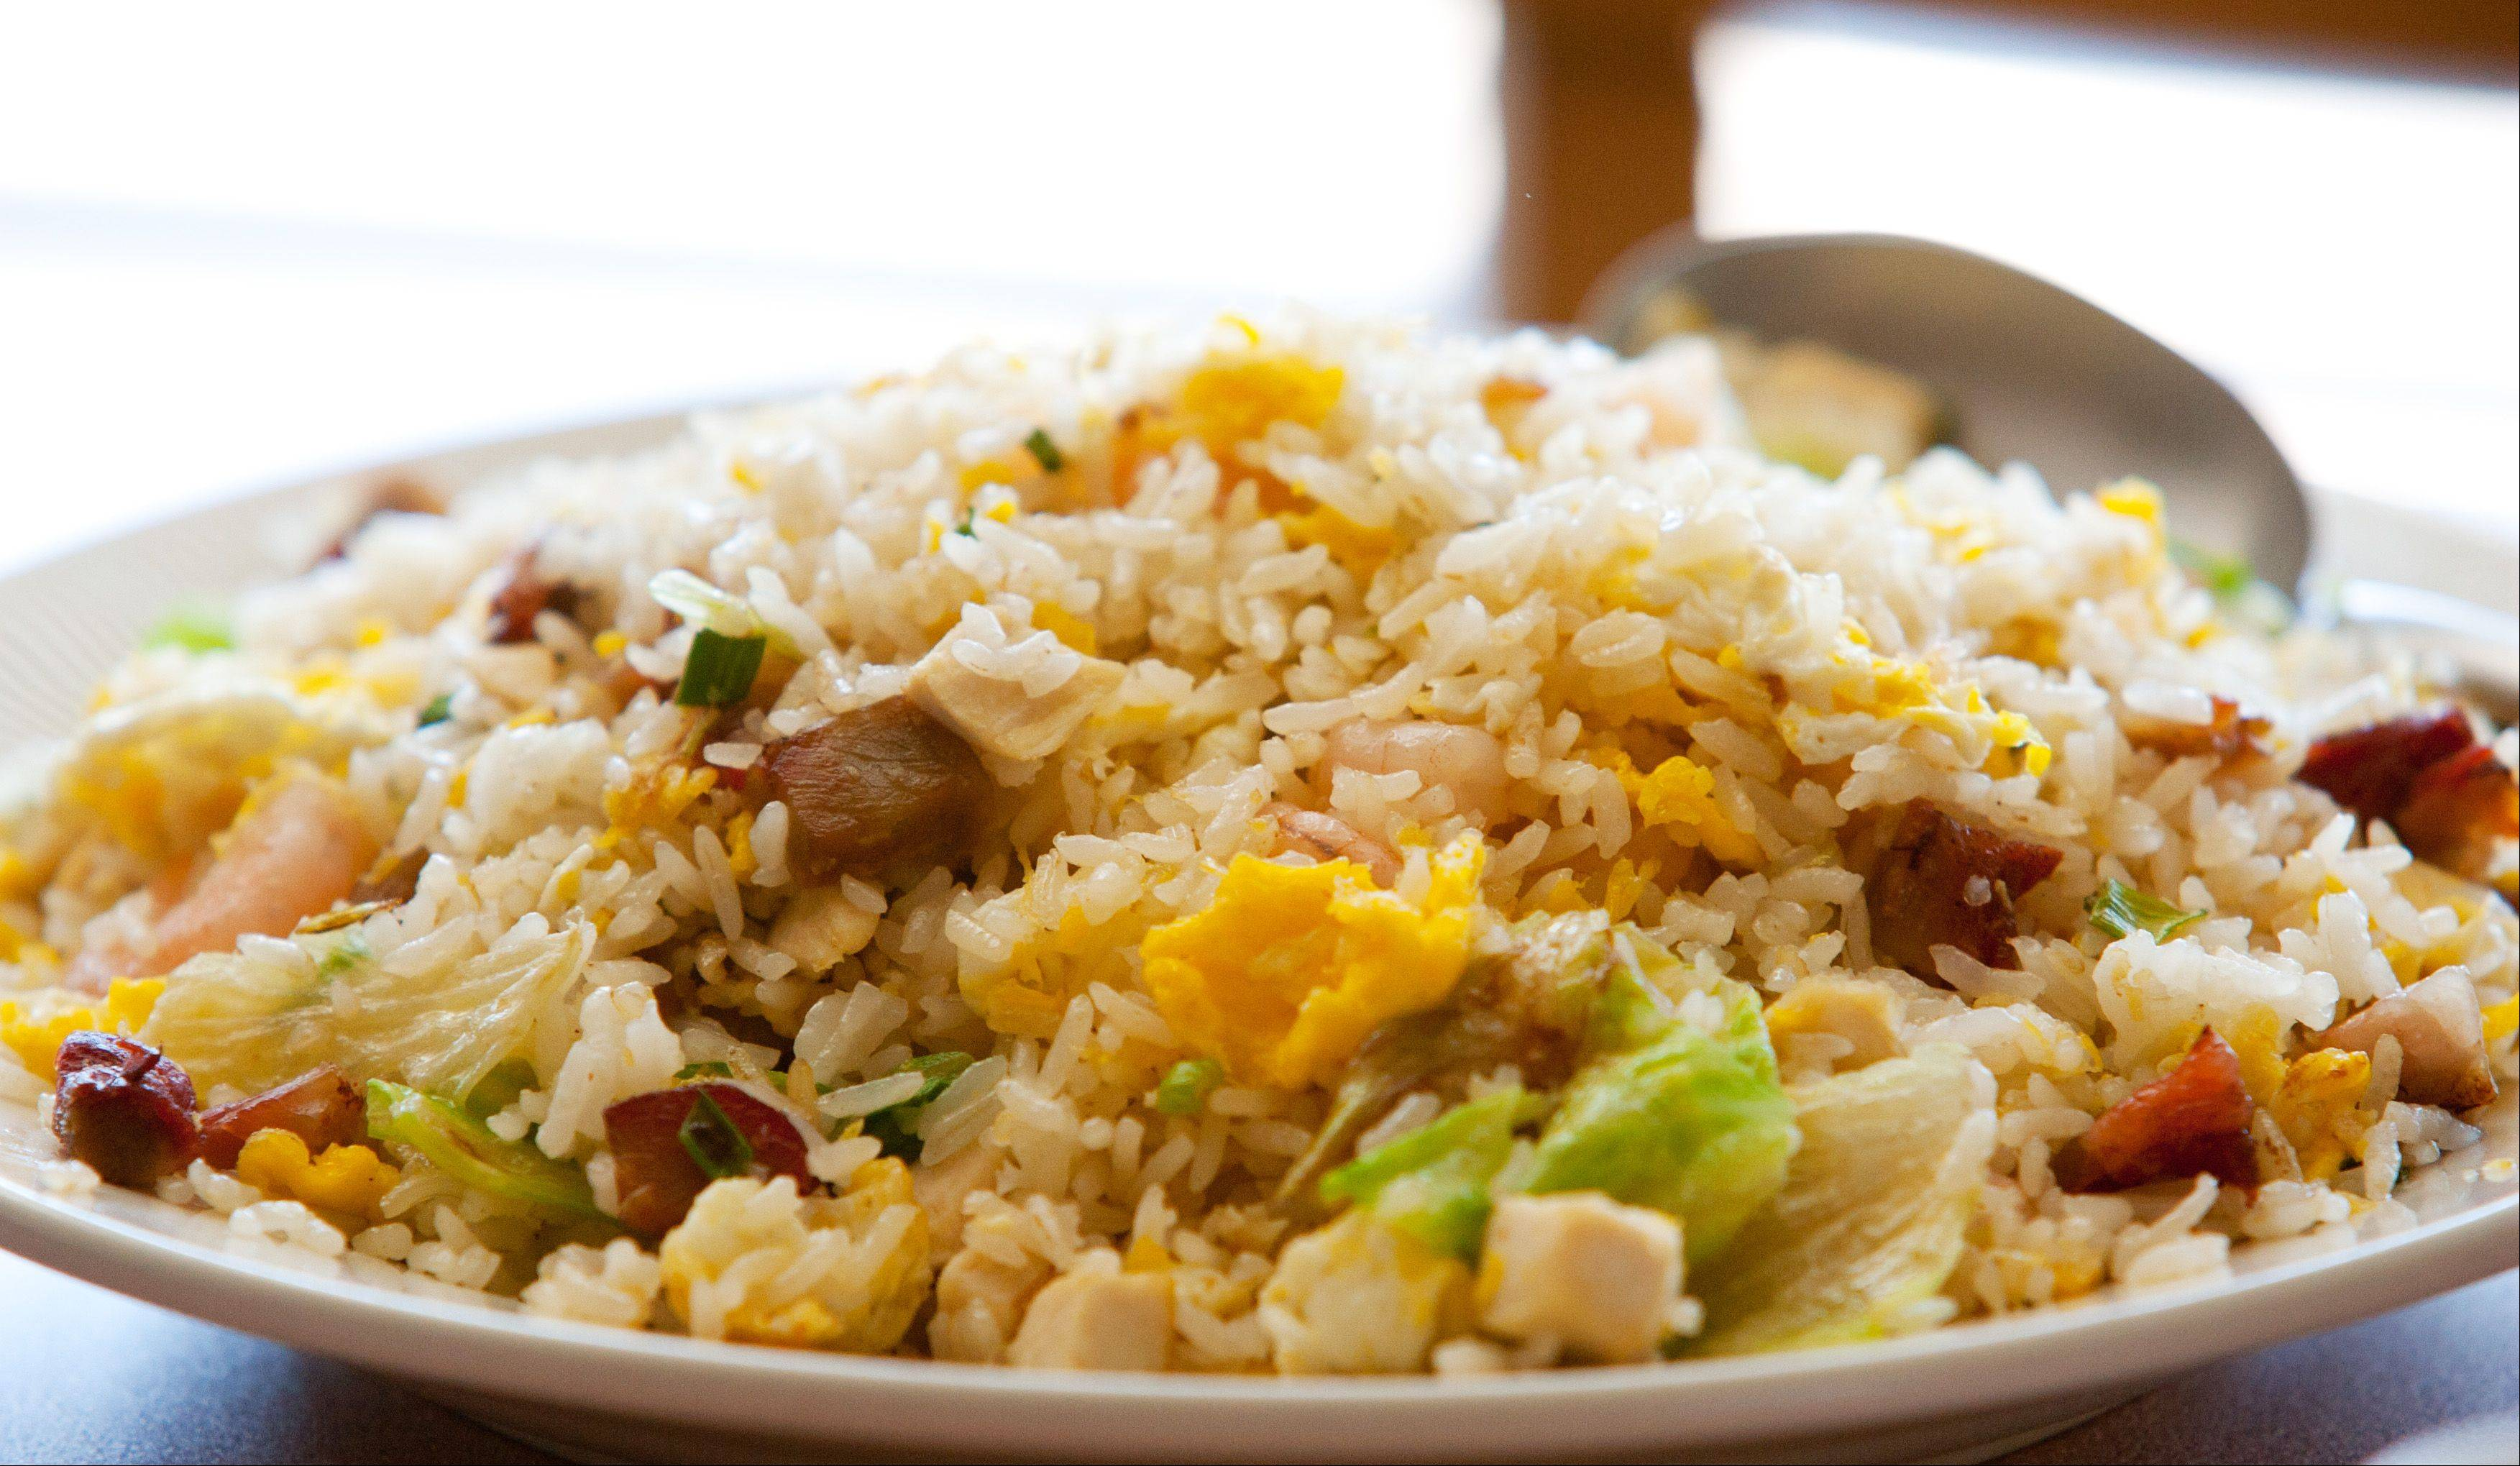 Fried rice also is on the menu at Fabulous Noodles Chinese Restaurant in Lisle.